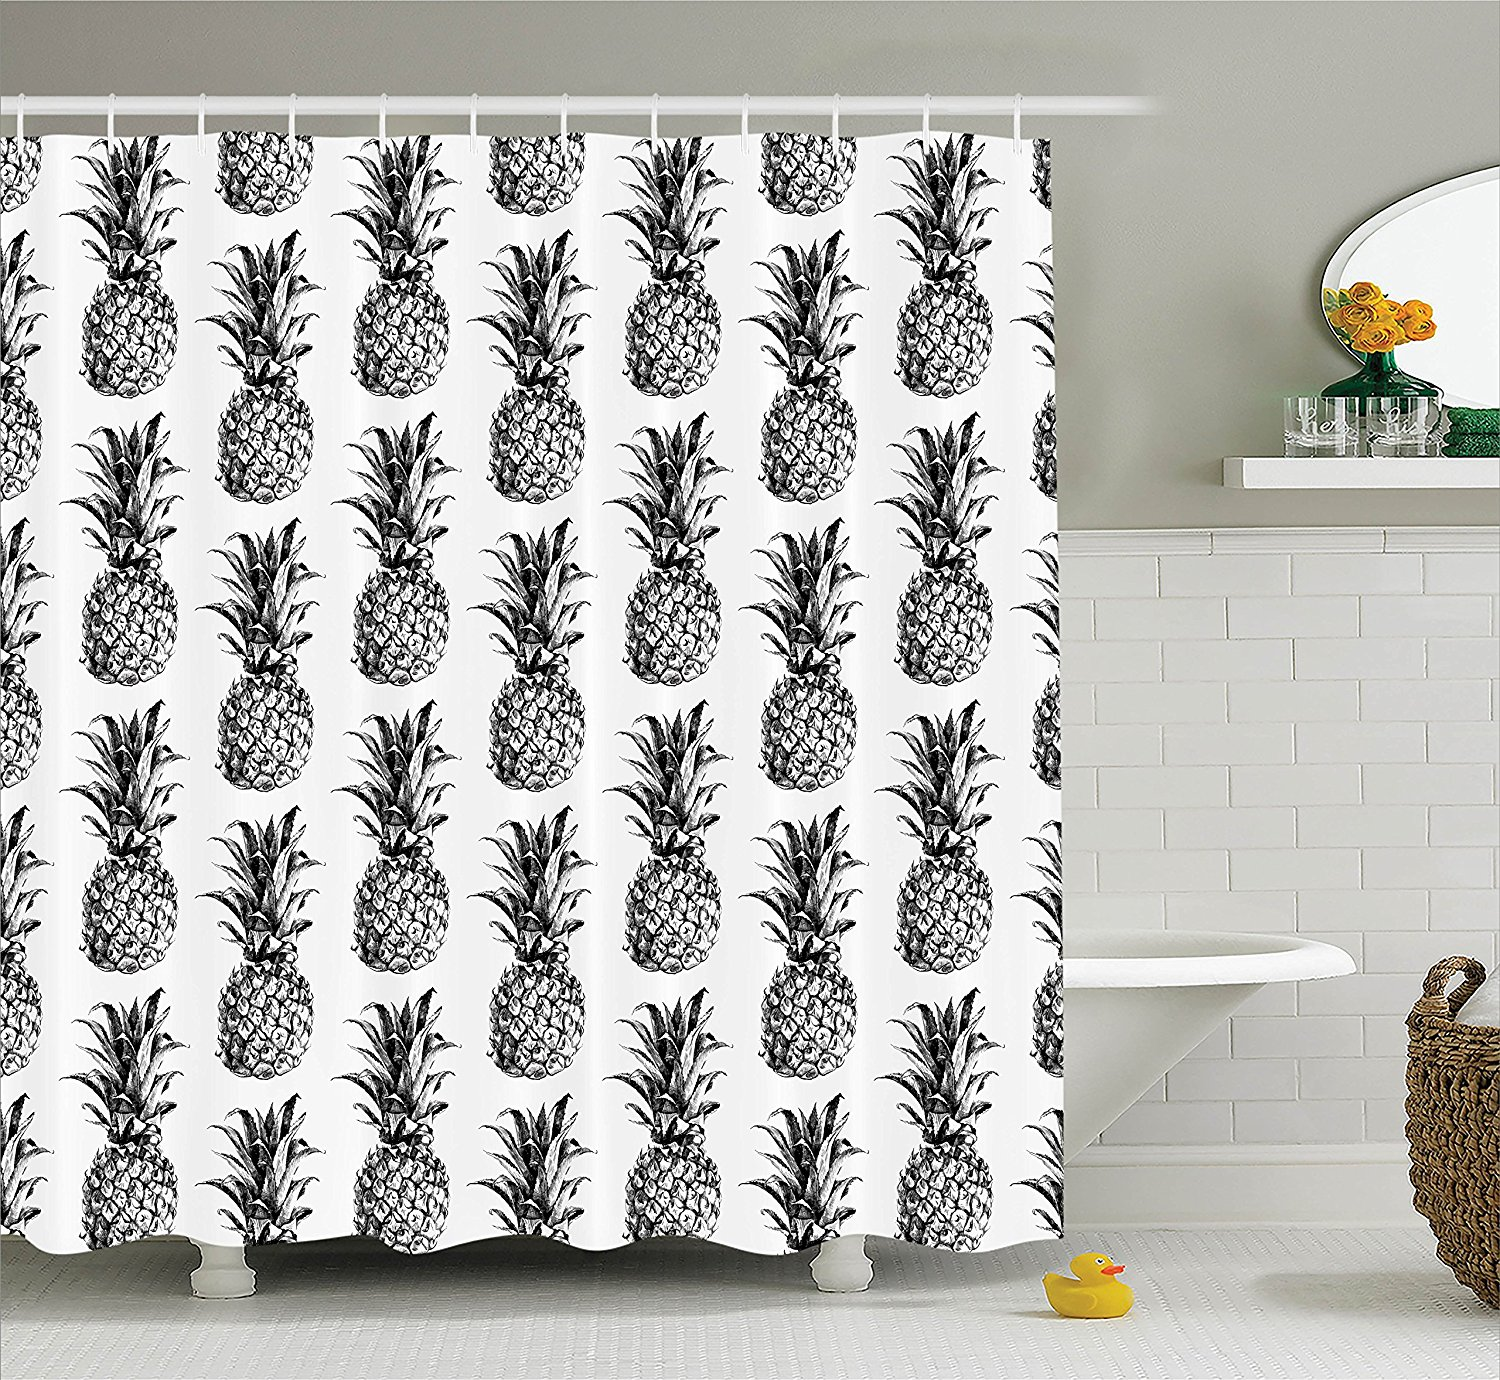 Memory Home Pineapple Shower Curtain Vintage Style Pineapple Fruit ...